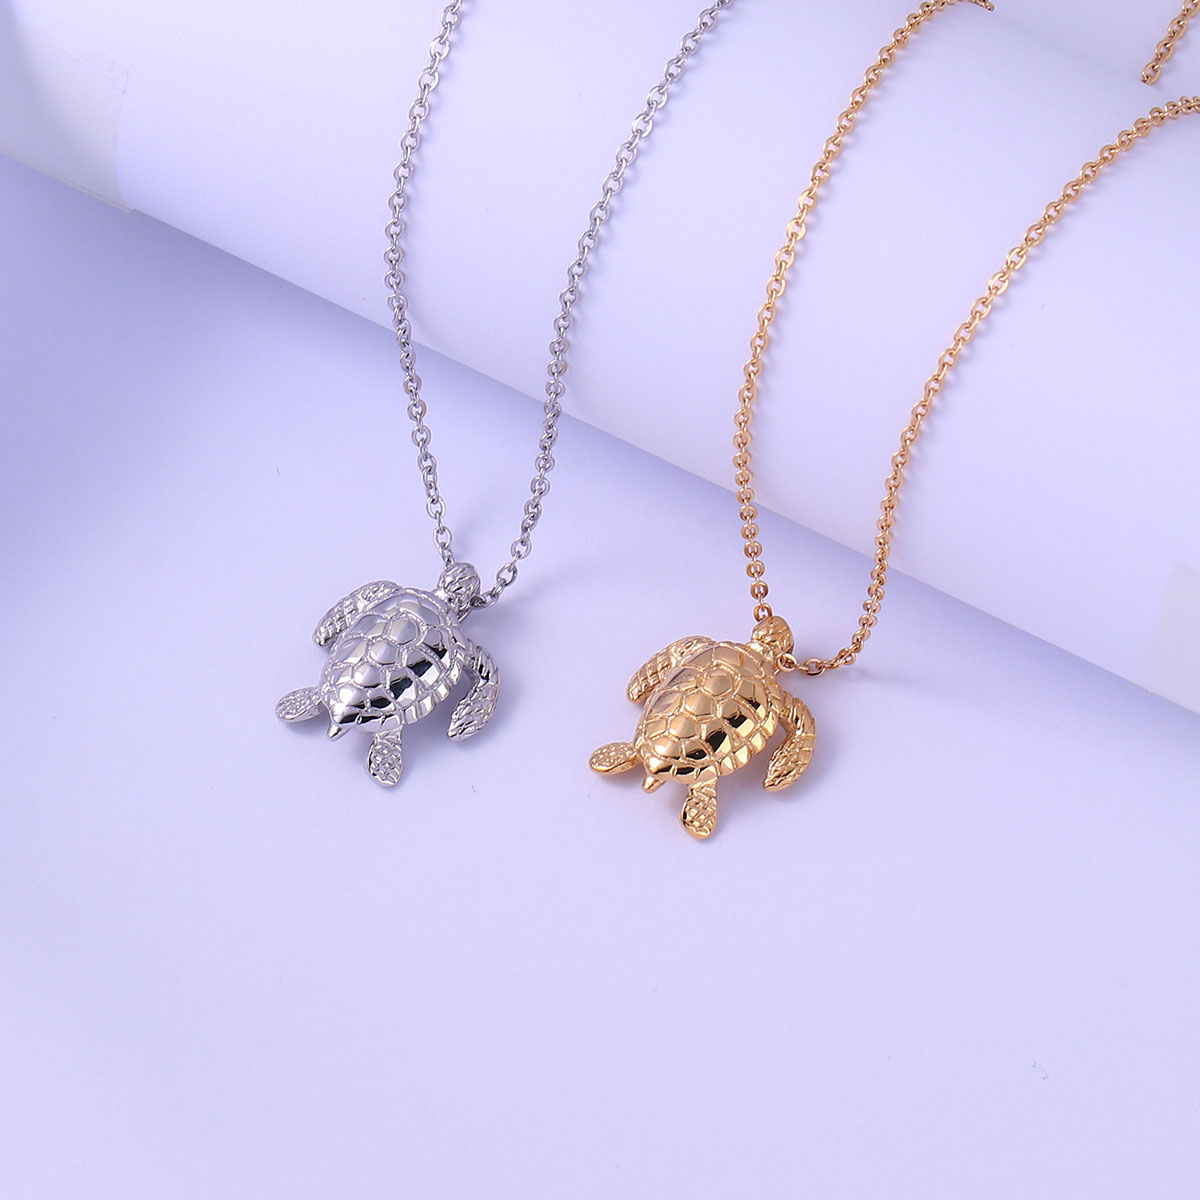 Sterling Silver Jewelry Turtle Necklace Personalized Pet Animal Jewelry Engraving Pendant Rose Gold Jewelry Gold Jewelry